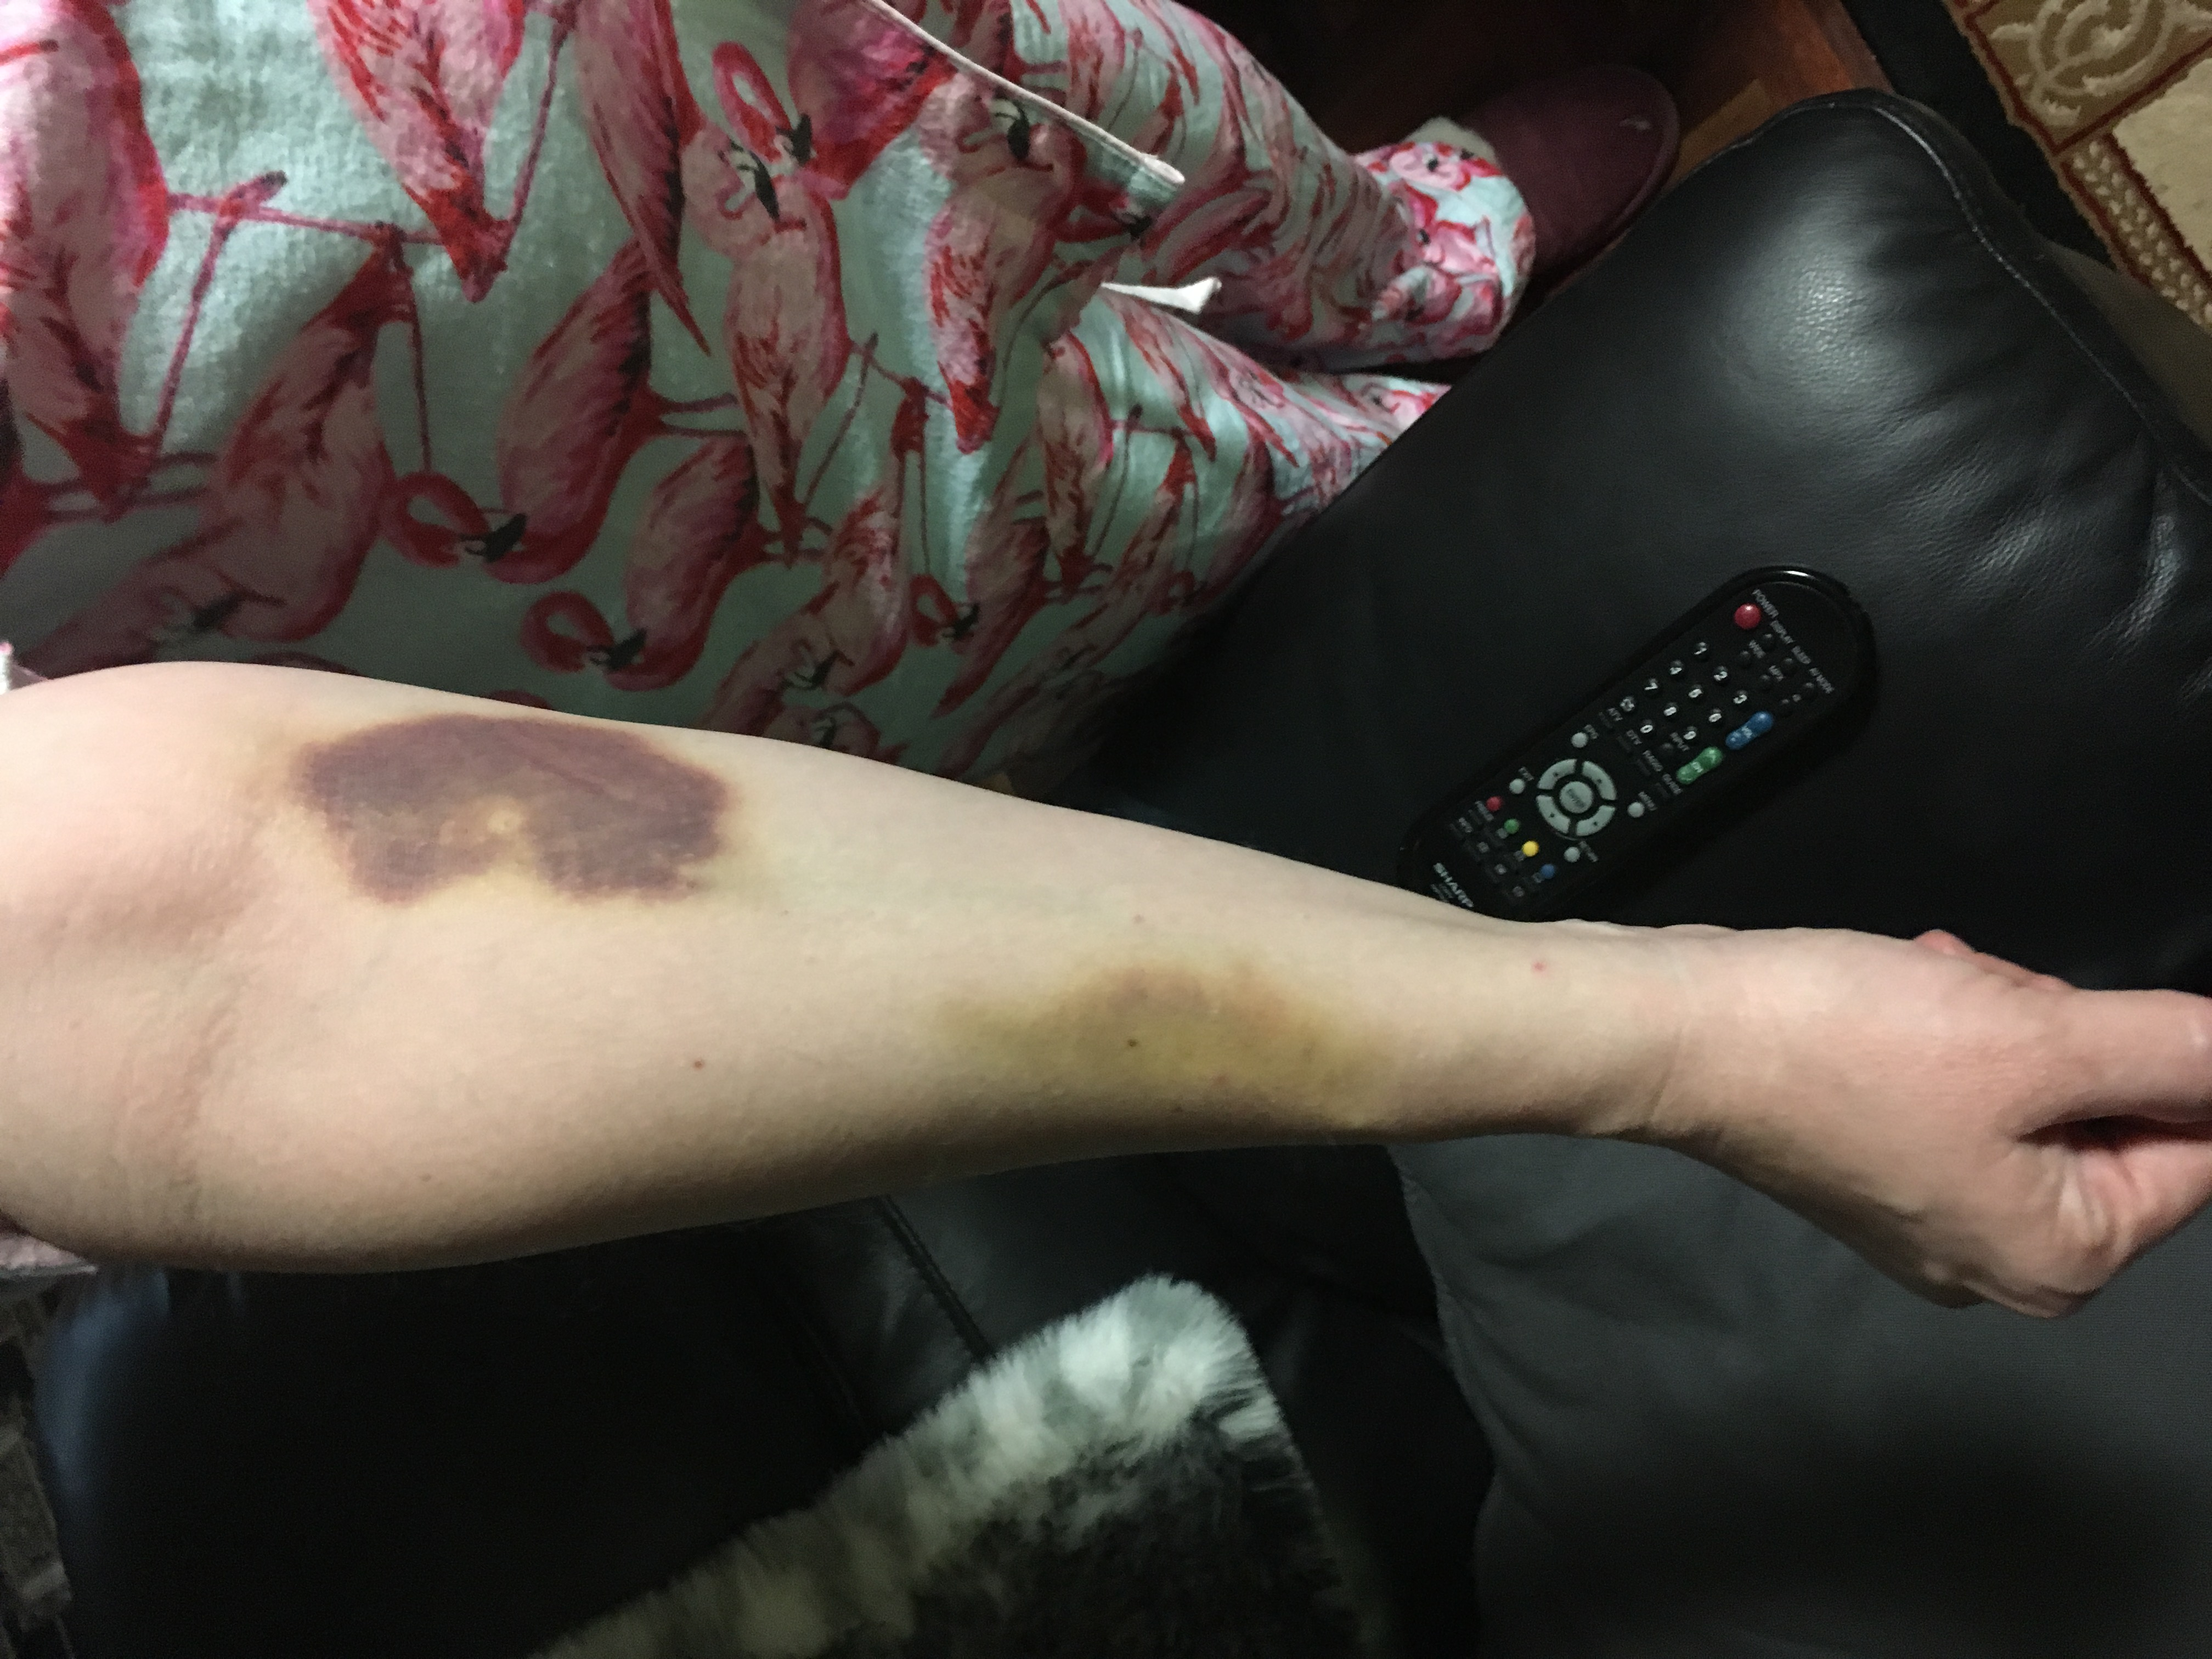 The result of two collapsed veins during IV insertion, 10 days later